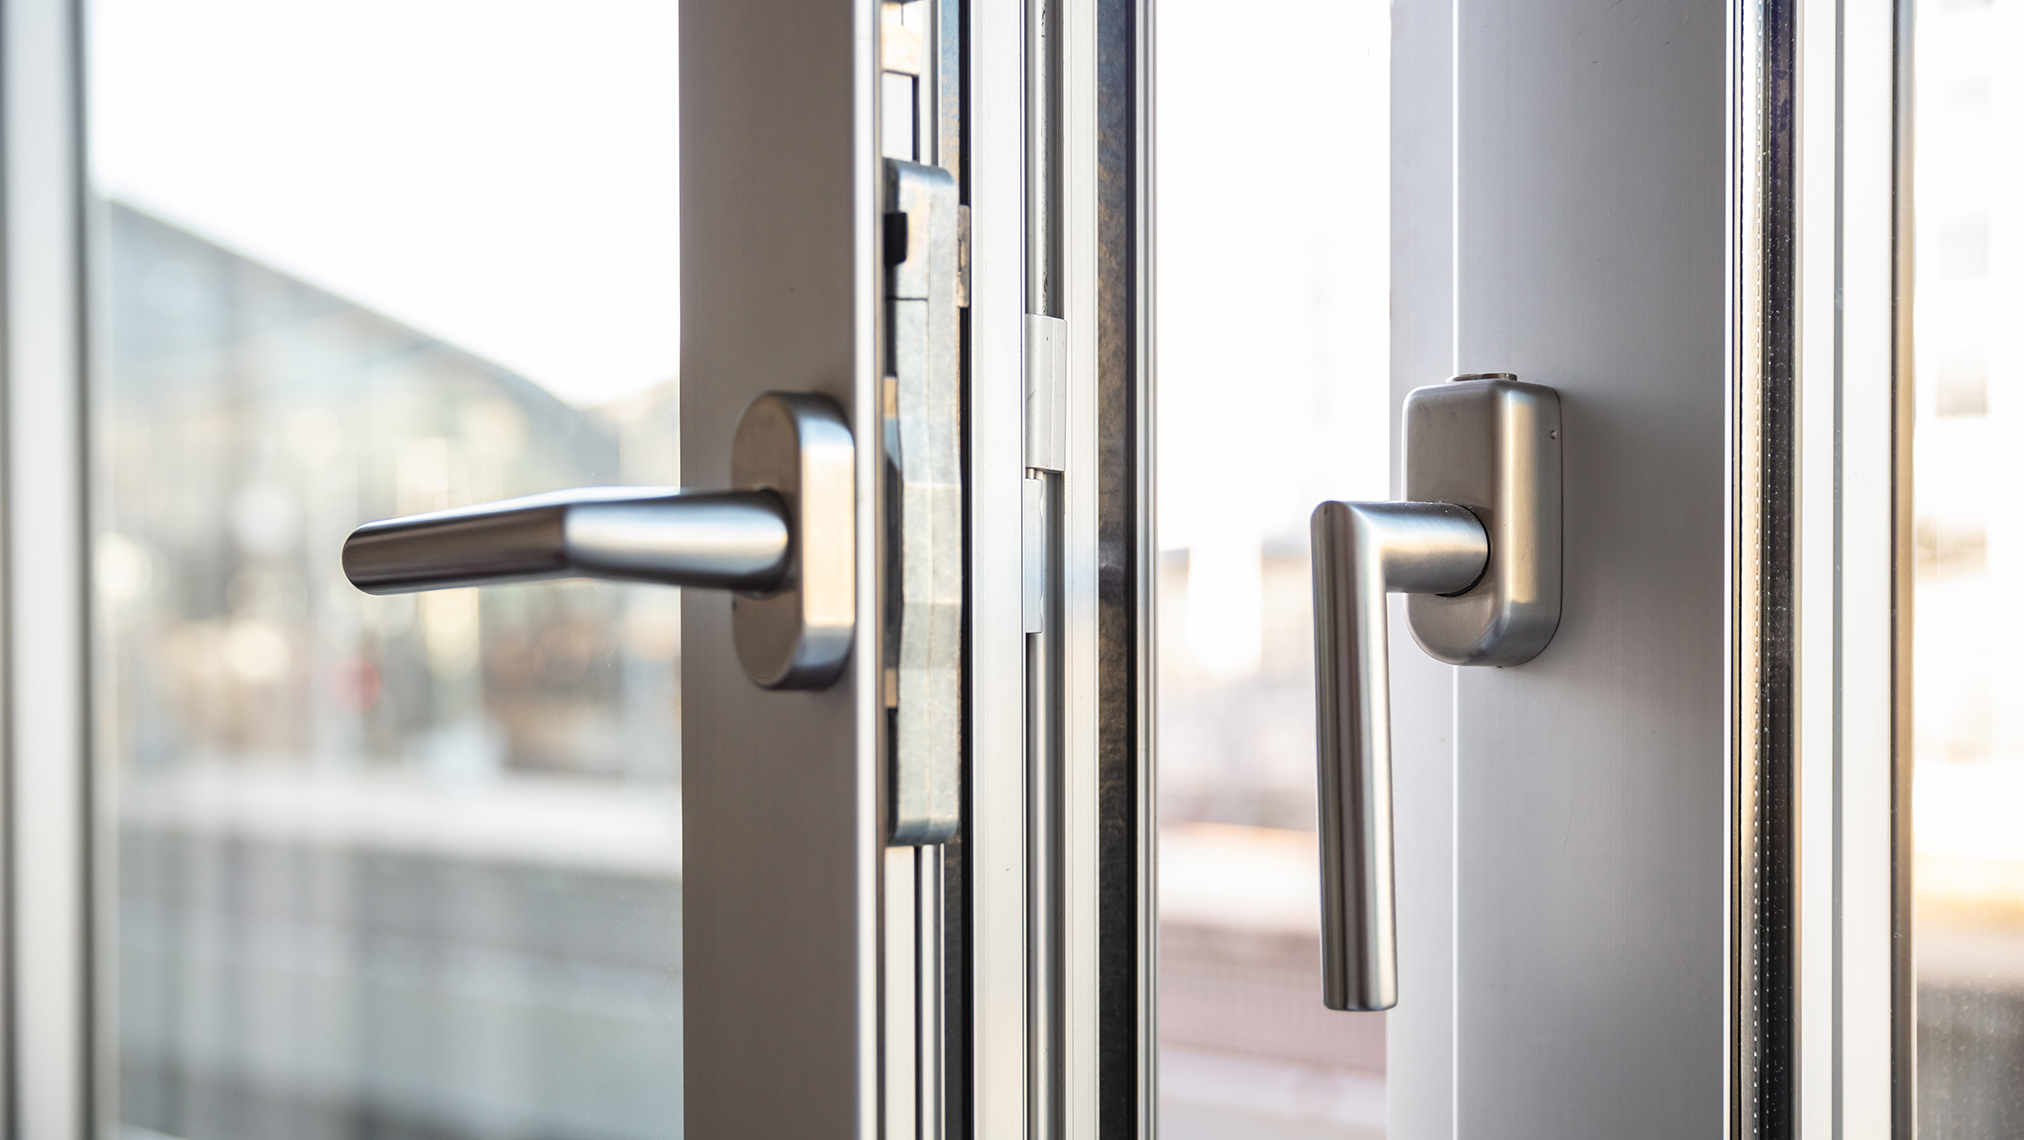 Close up view of aluminum door window handles, against a blurry background